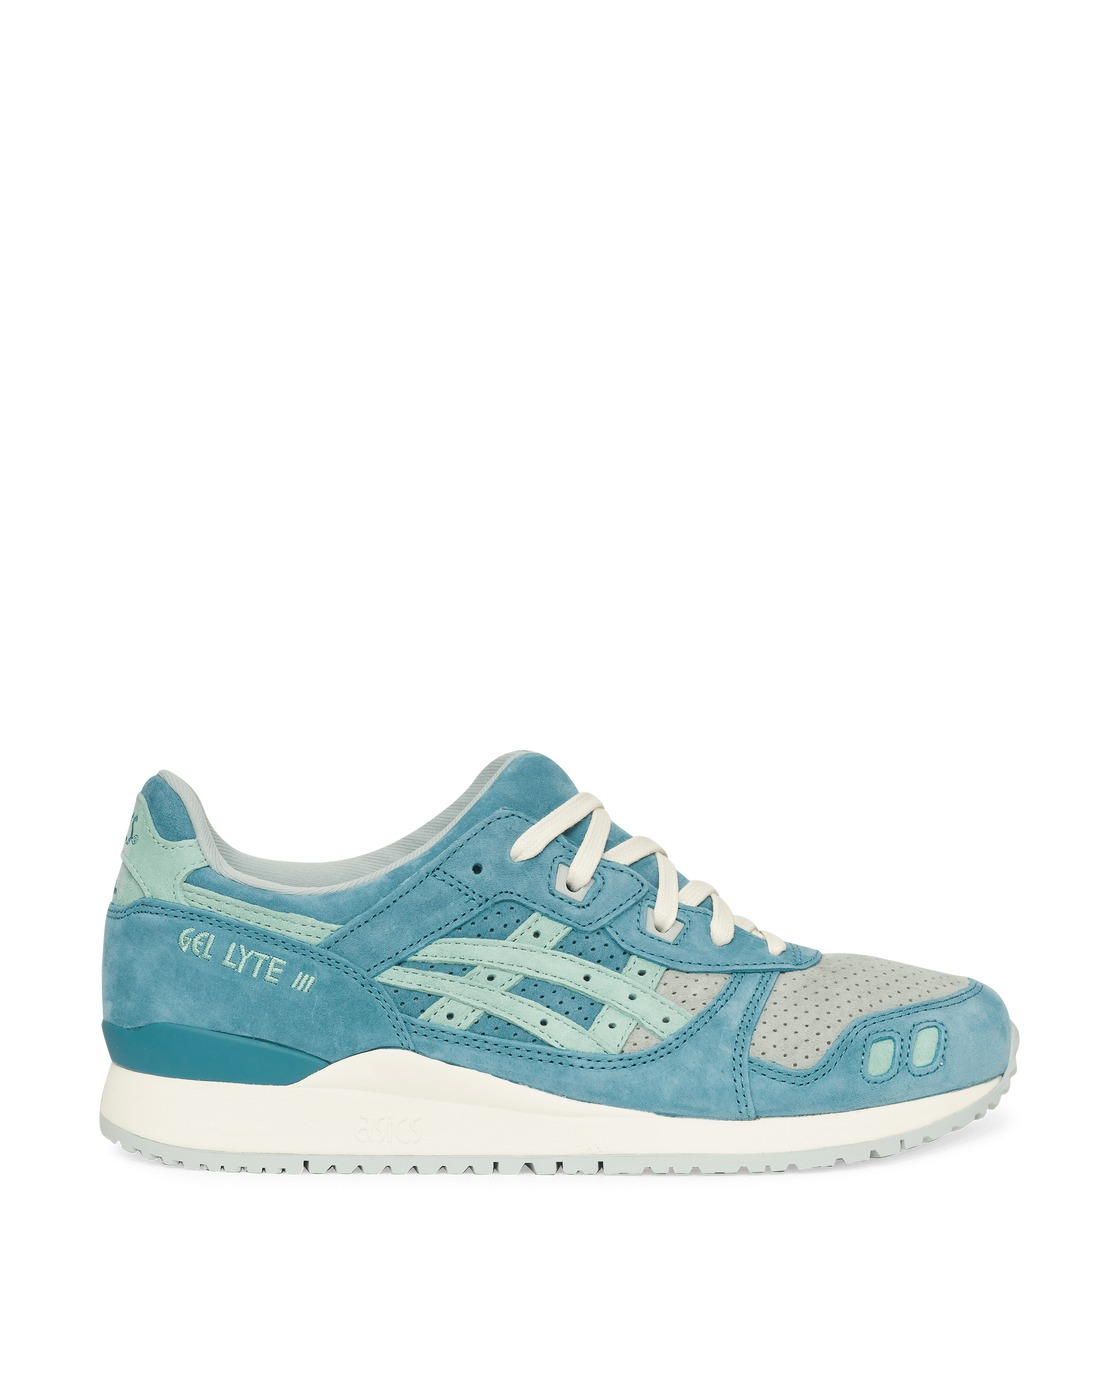 Photo: Asics Gel Lyte Iii Og Sneakers Misty Pine/Seafoam